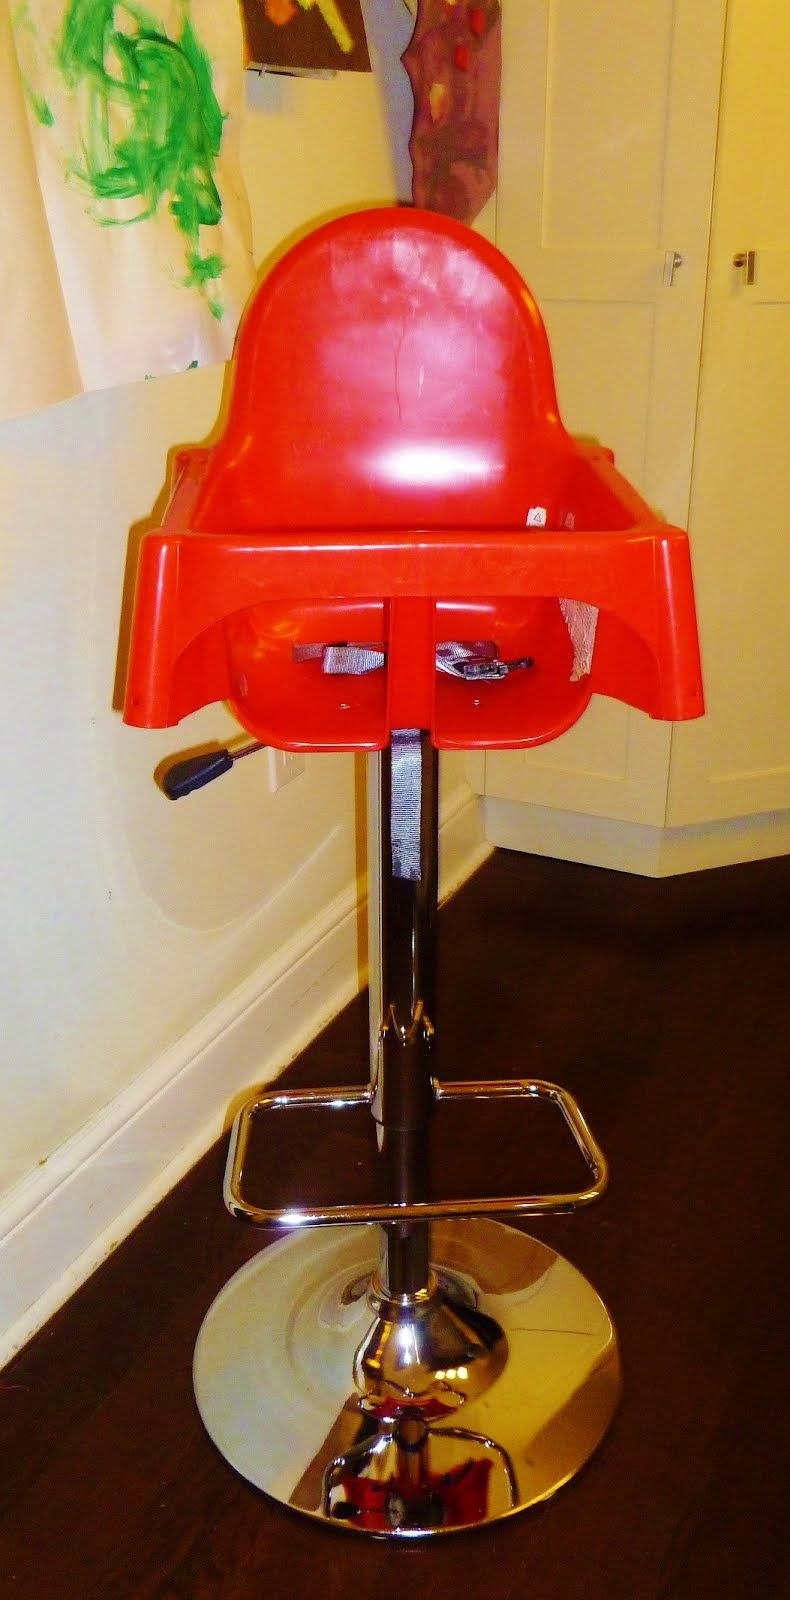 Super Cleaver Idea For A Toddler Bar Stool Using Ikea Highchair And An Adjule Base